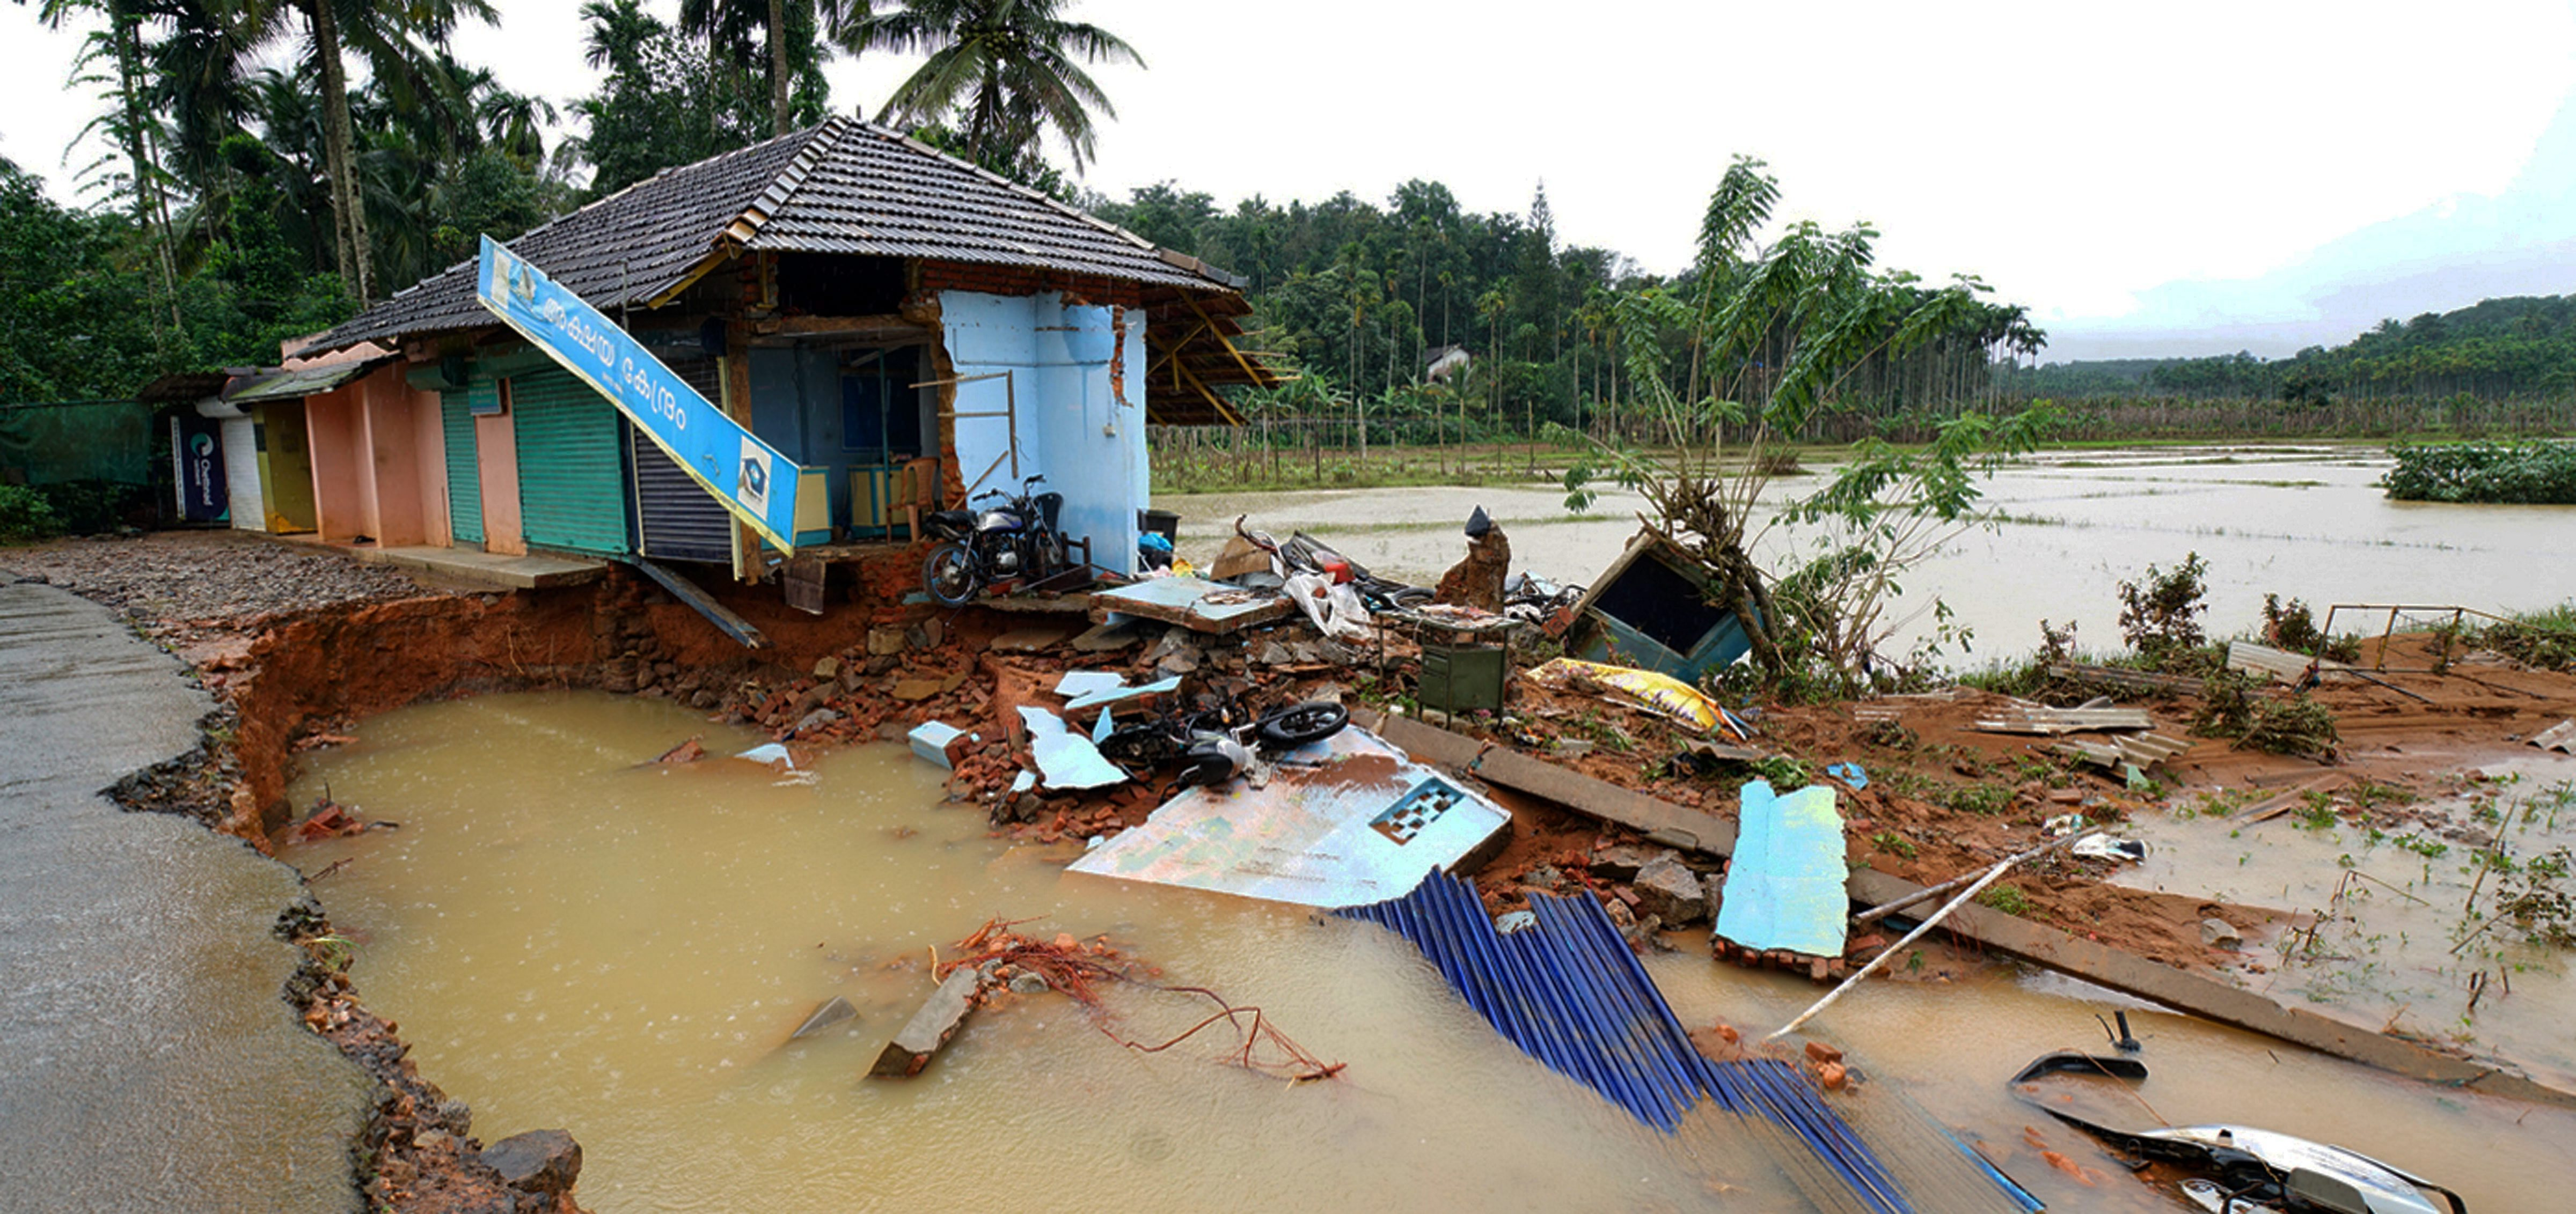 A house damaged by the flooded in Kerala's Wayanad, which is in the Western Ghats. Photo credit: PTI